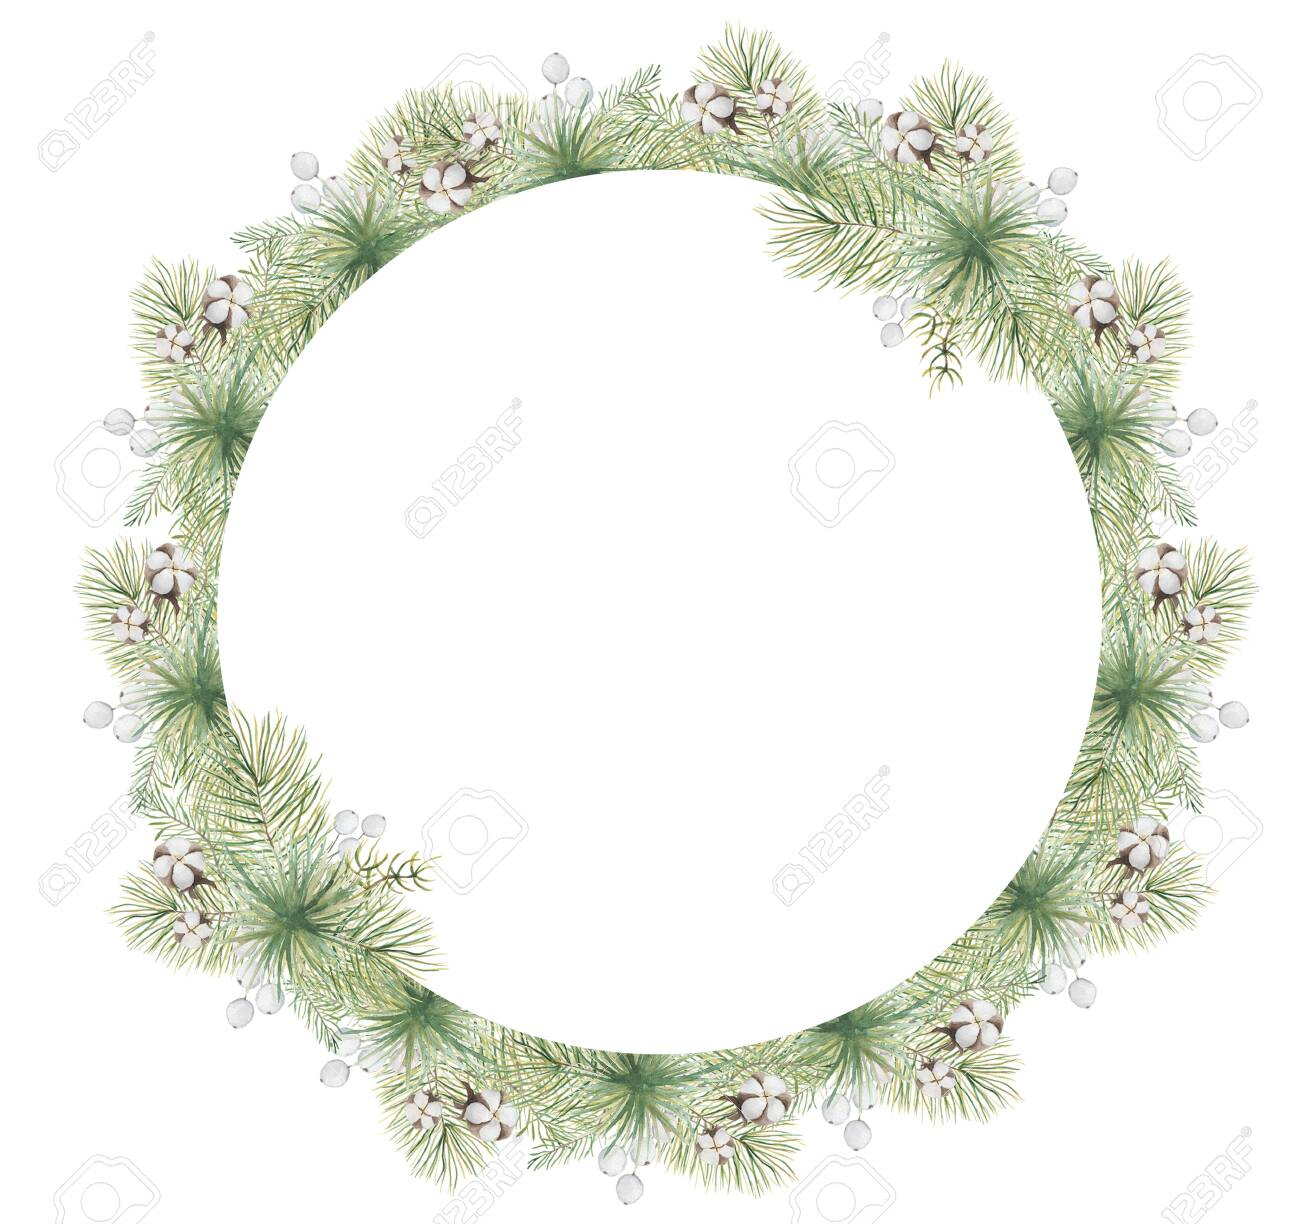 Watercolor Christmas borders with pine tree branches, berries and cotton hand drawn illustration isolated on white background - 154865364